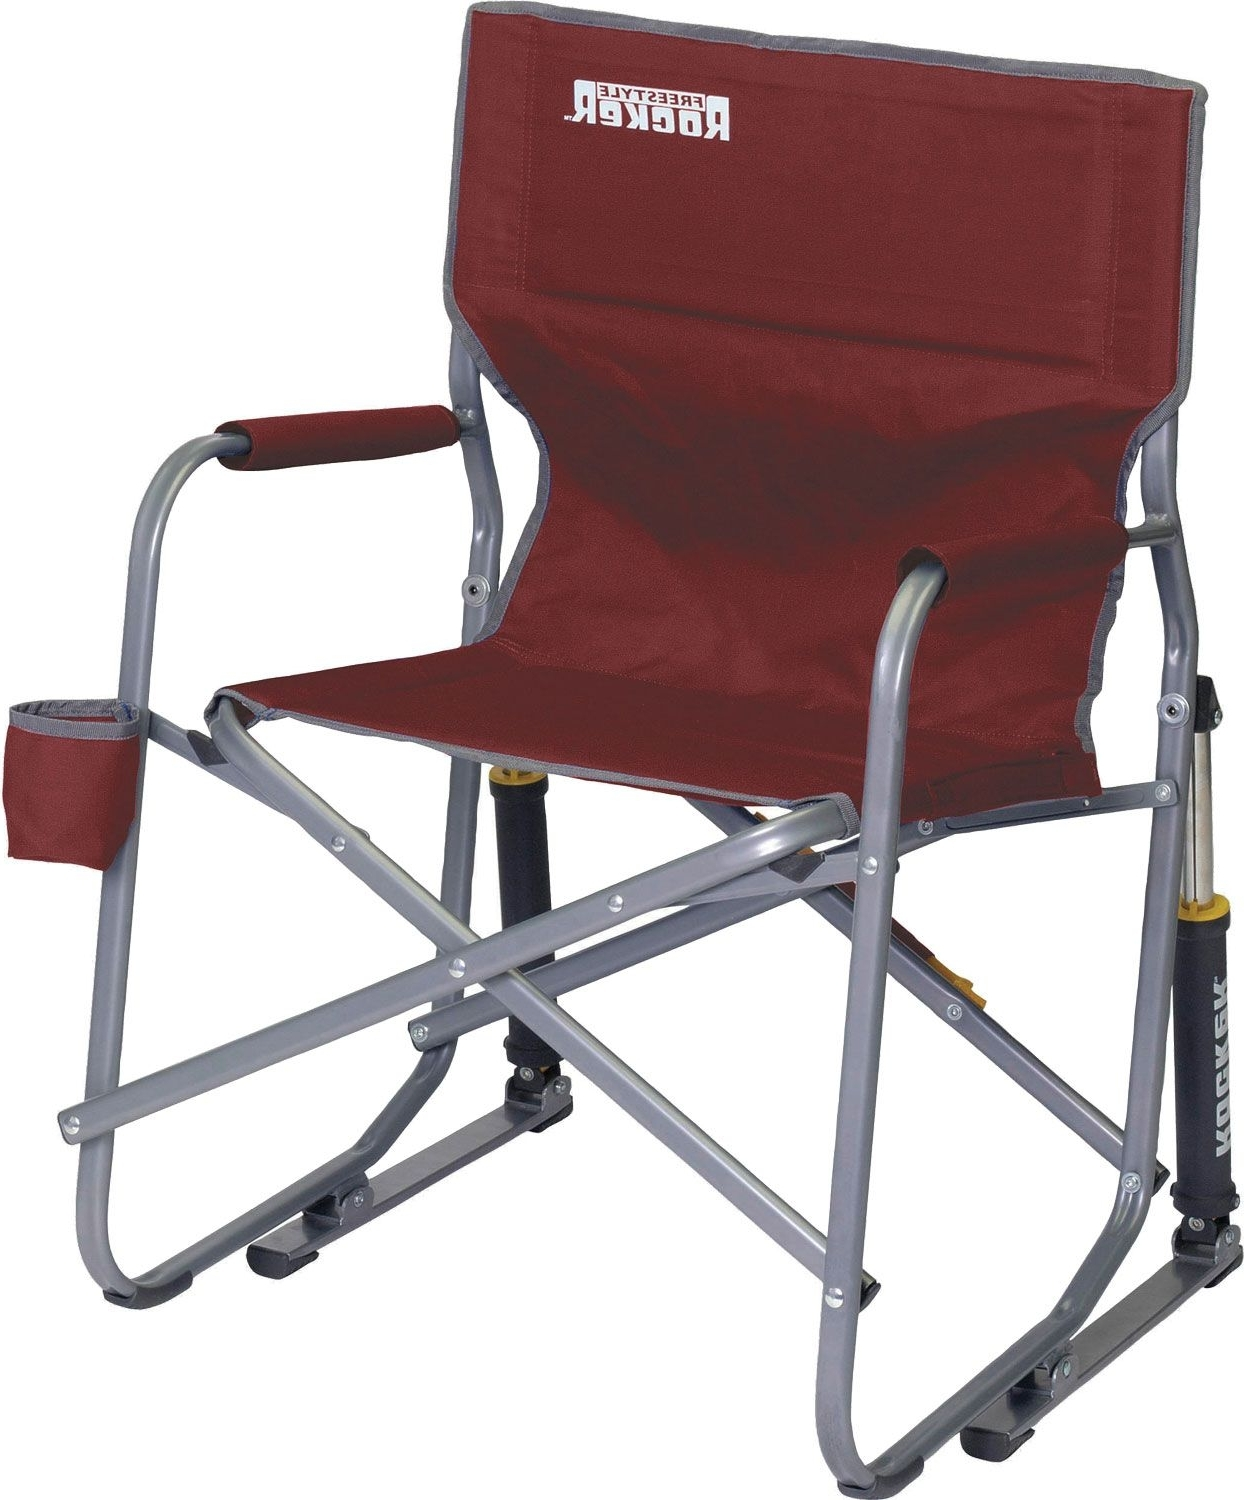 Folding Rocking Chairs Within Well Known Gci Outdoor Freestyle Rocker Chair Sporting Goods Cinnamon Folding (View 9 of 15)